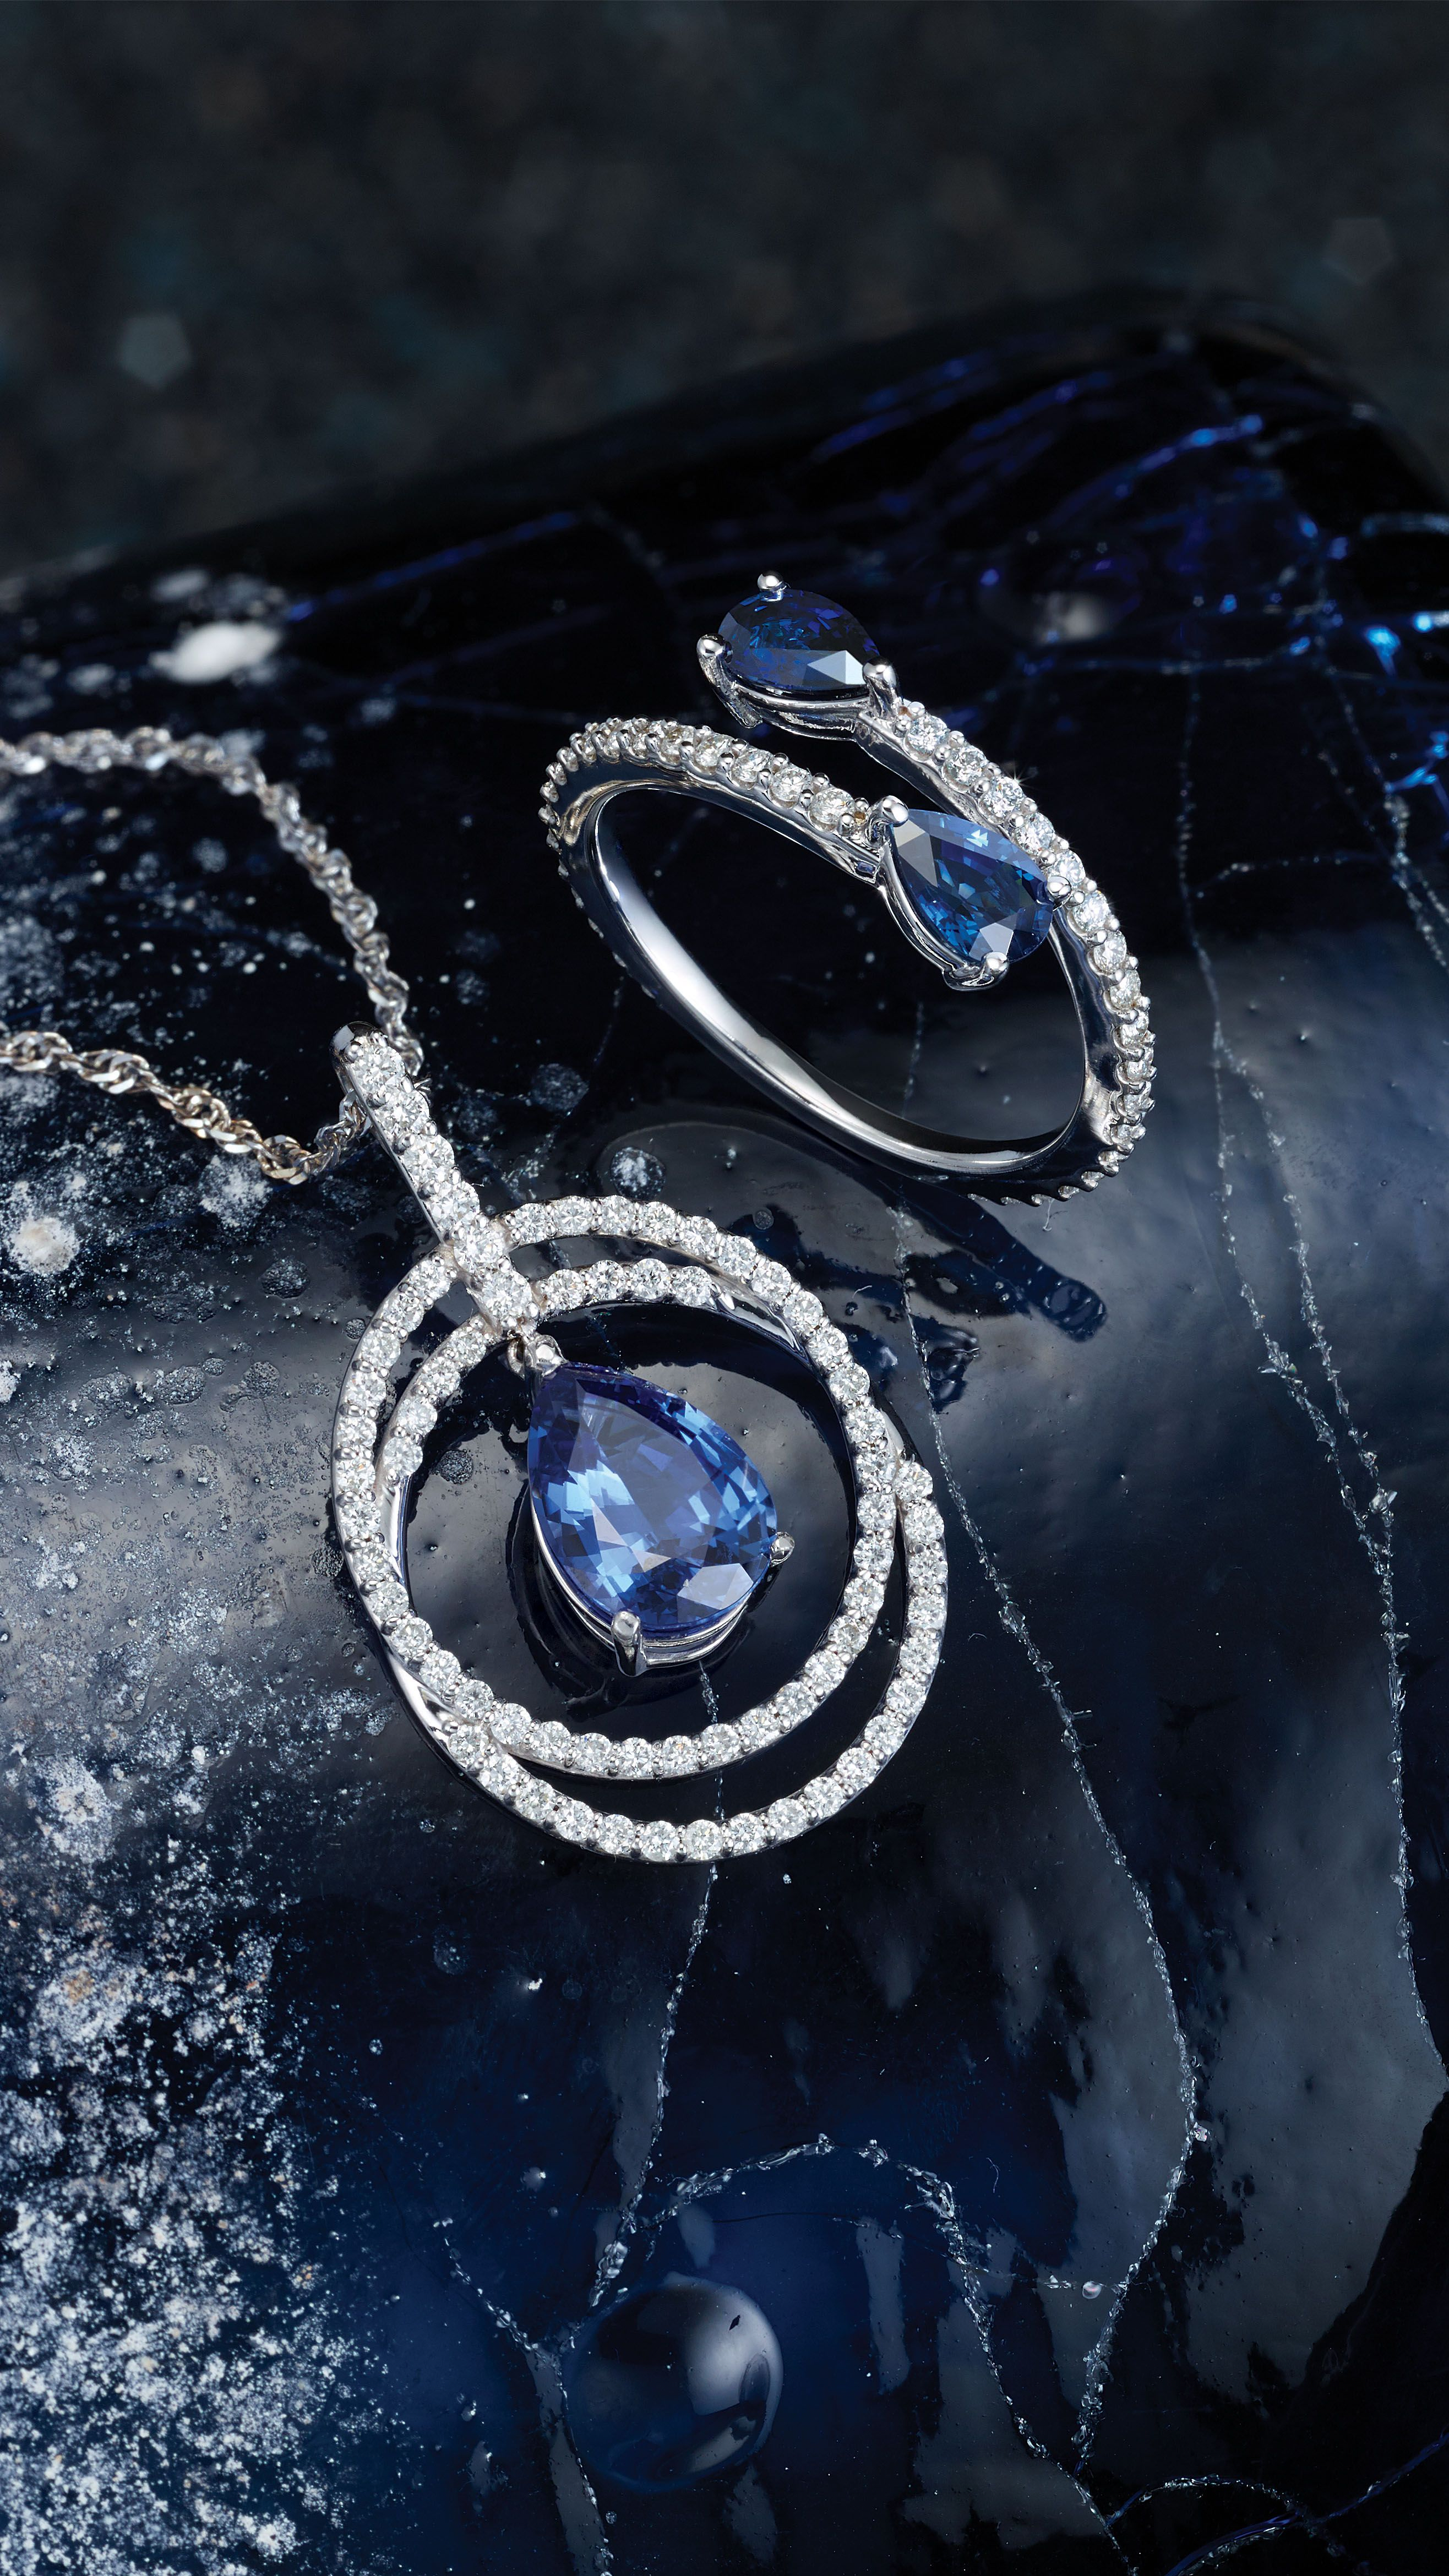 Celebrate September Birthdays with these sapphire styles